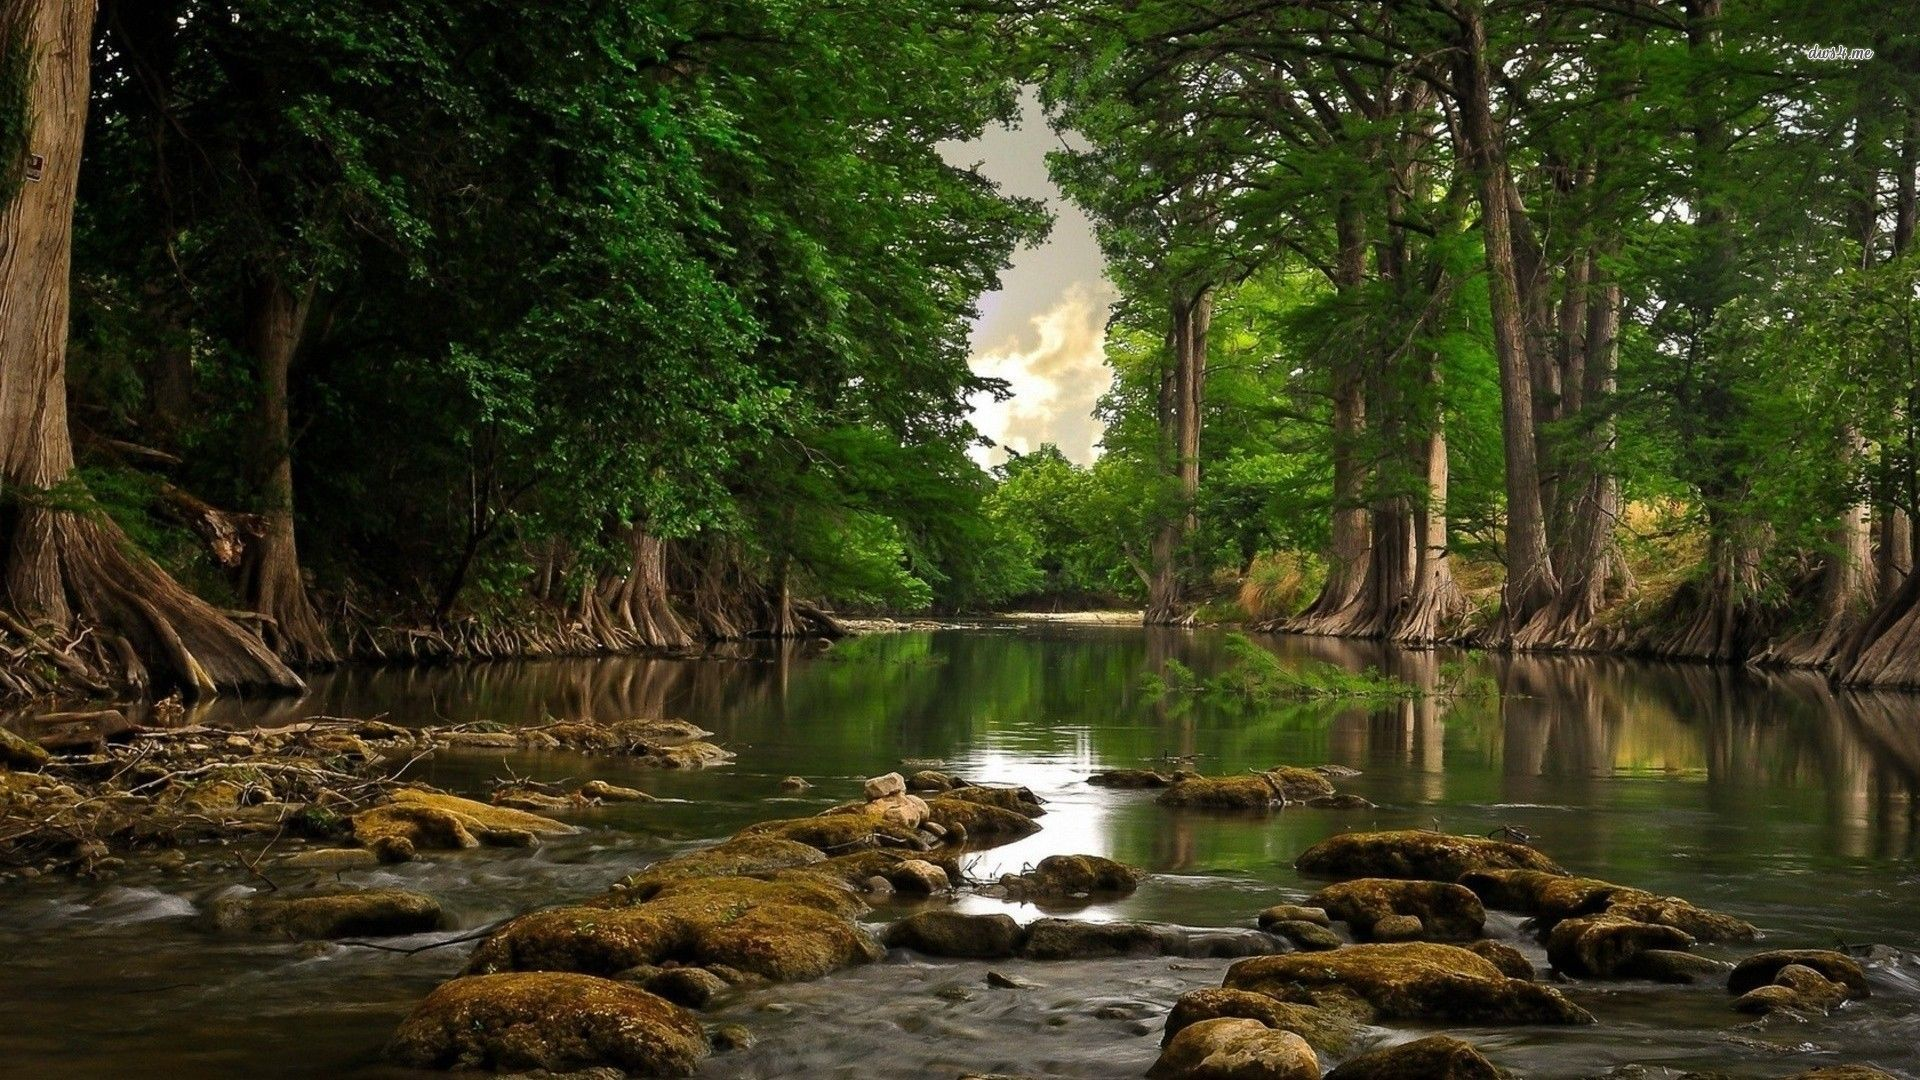 Forest River Wallpapers Top Free Forest River Backgrounds Wallpaperaccess